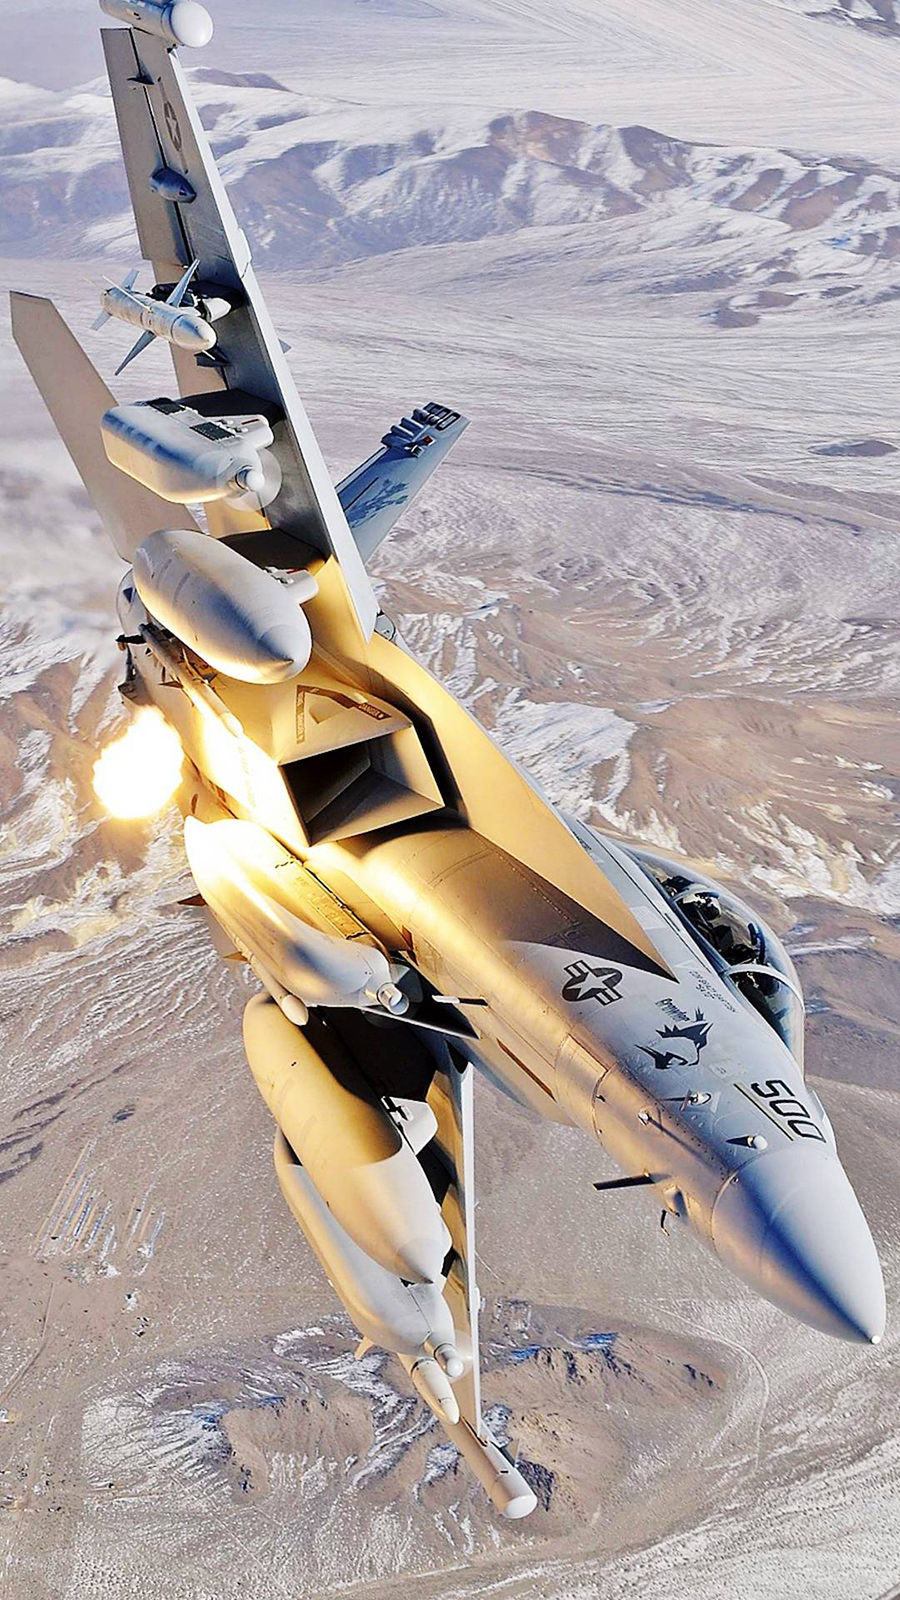 Raptor Jet, Fly, Wallpapers Free Download For Your Device